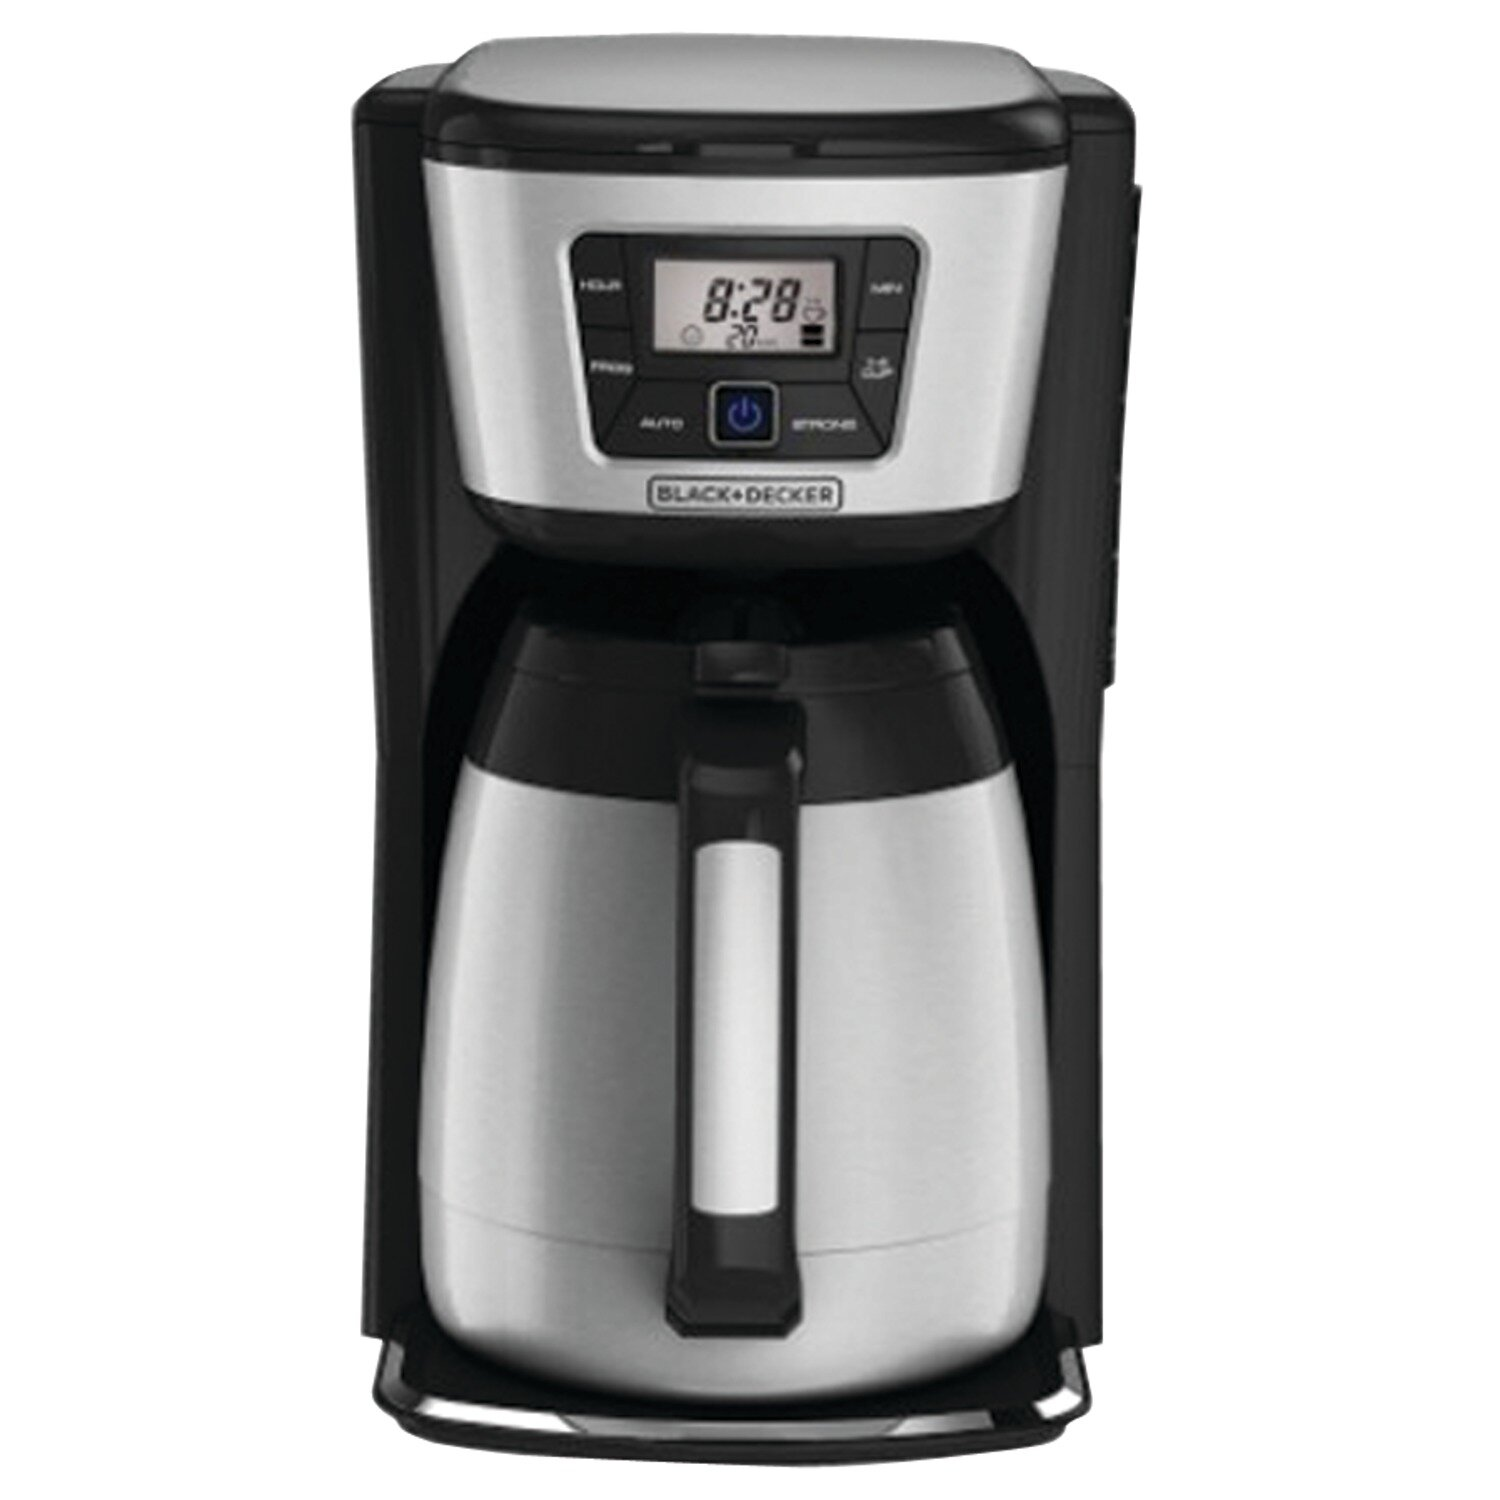 Thermal Coffee Maker Best Reviews : Black & Decker 12 Cup Programmable Thermal Coffee Maker & Reviews Wayfair